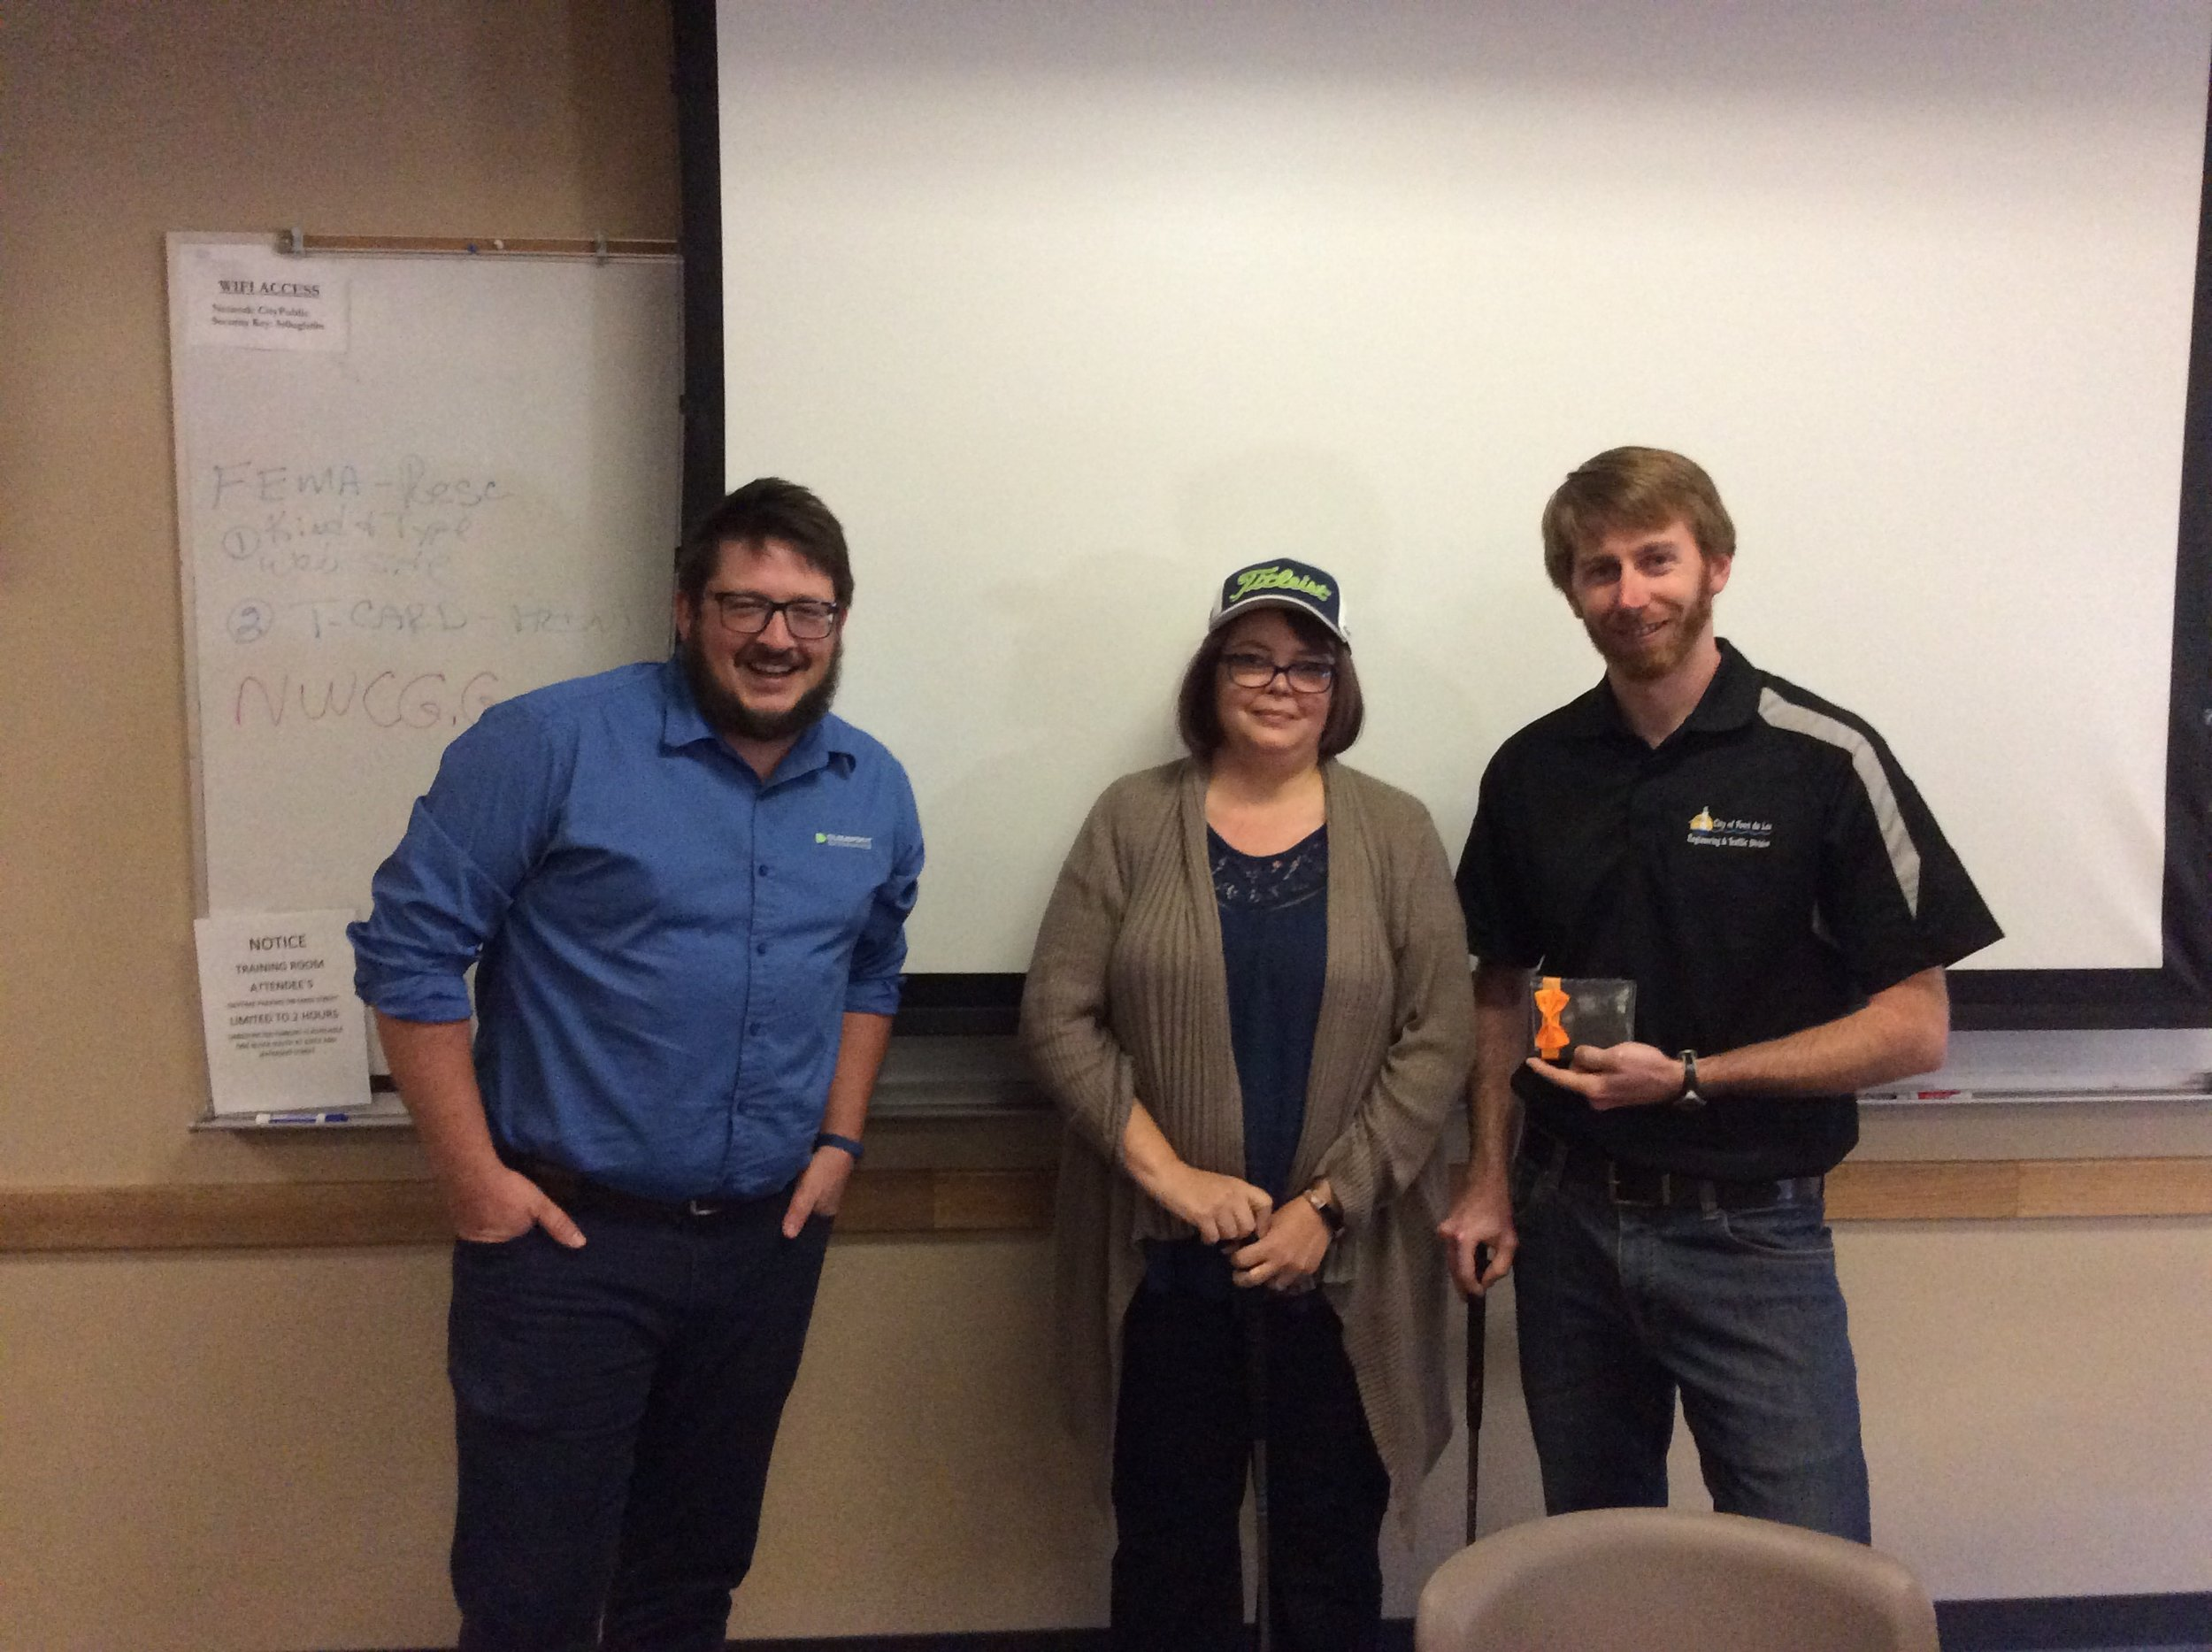 Congratulations to Chad Churchill who was our office golf champion and winner of an Amazon gift card! Jennifer Borlick came in second place and won a new Cloudpoint Titleist golf hat!